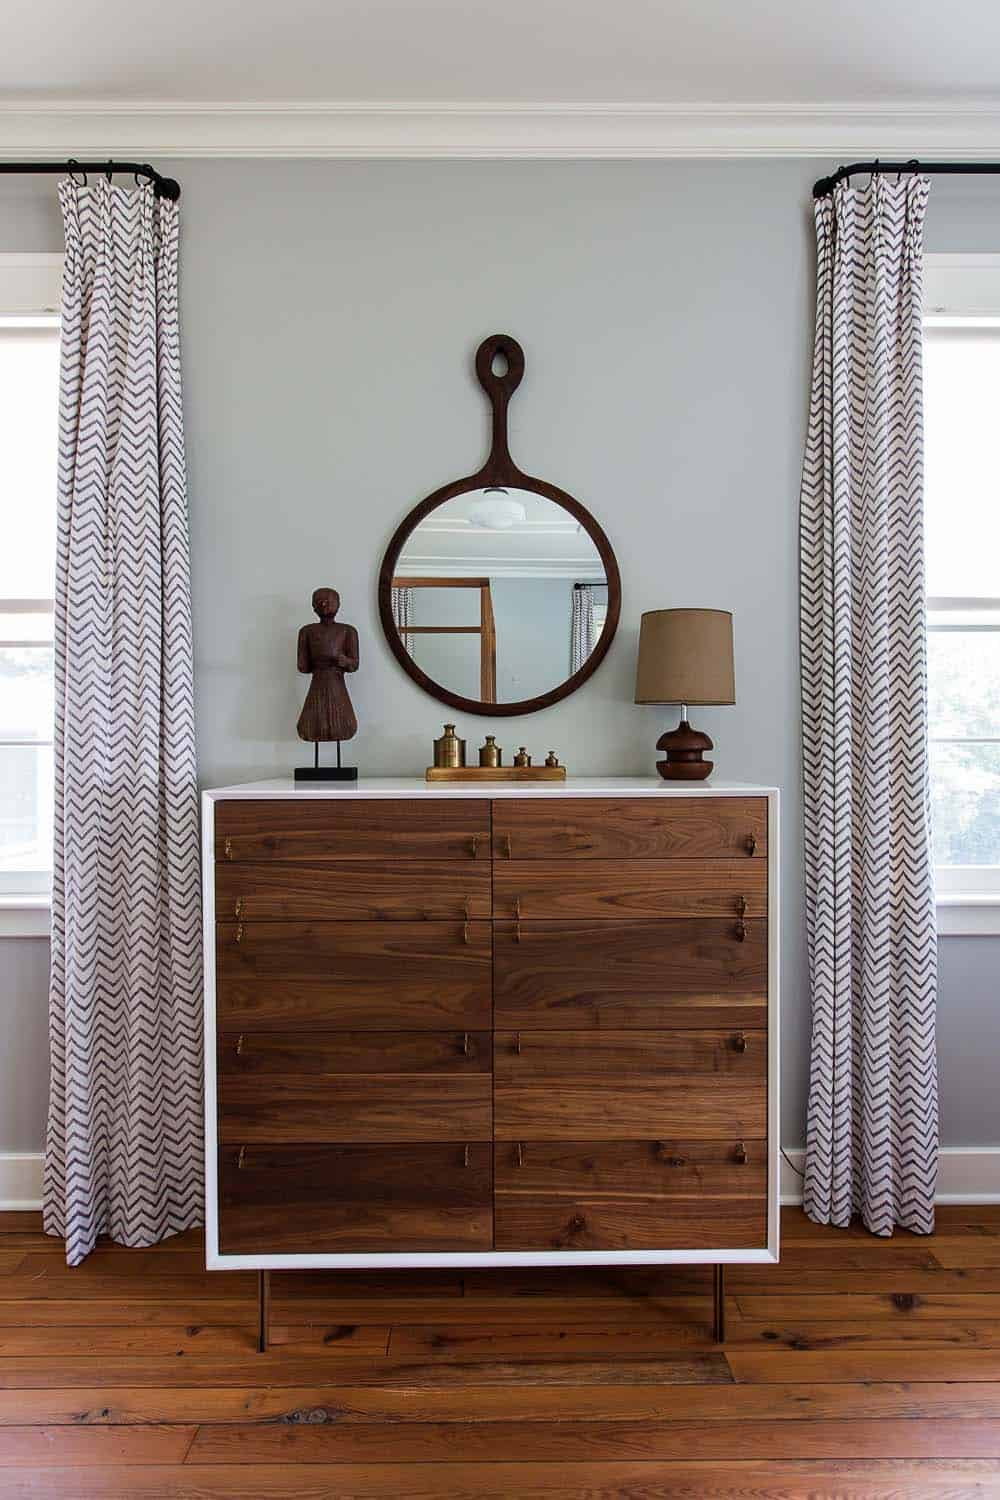 Midcentury Collected-Cortney Bishop Design-12-1 Kindesign